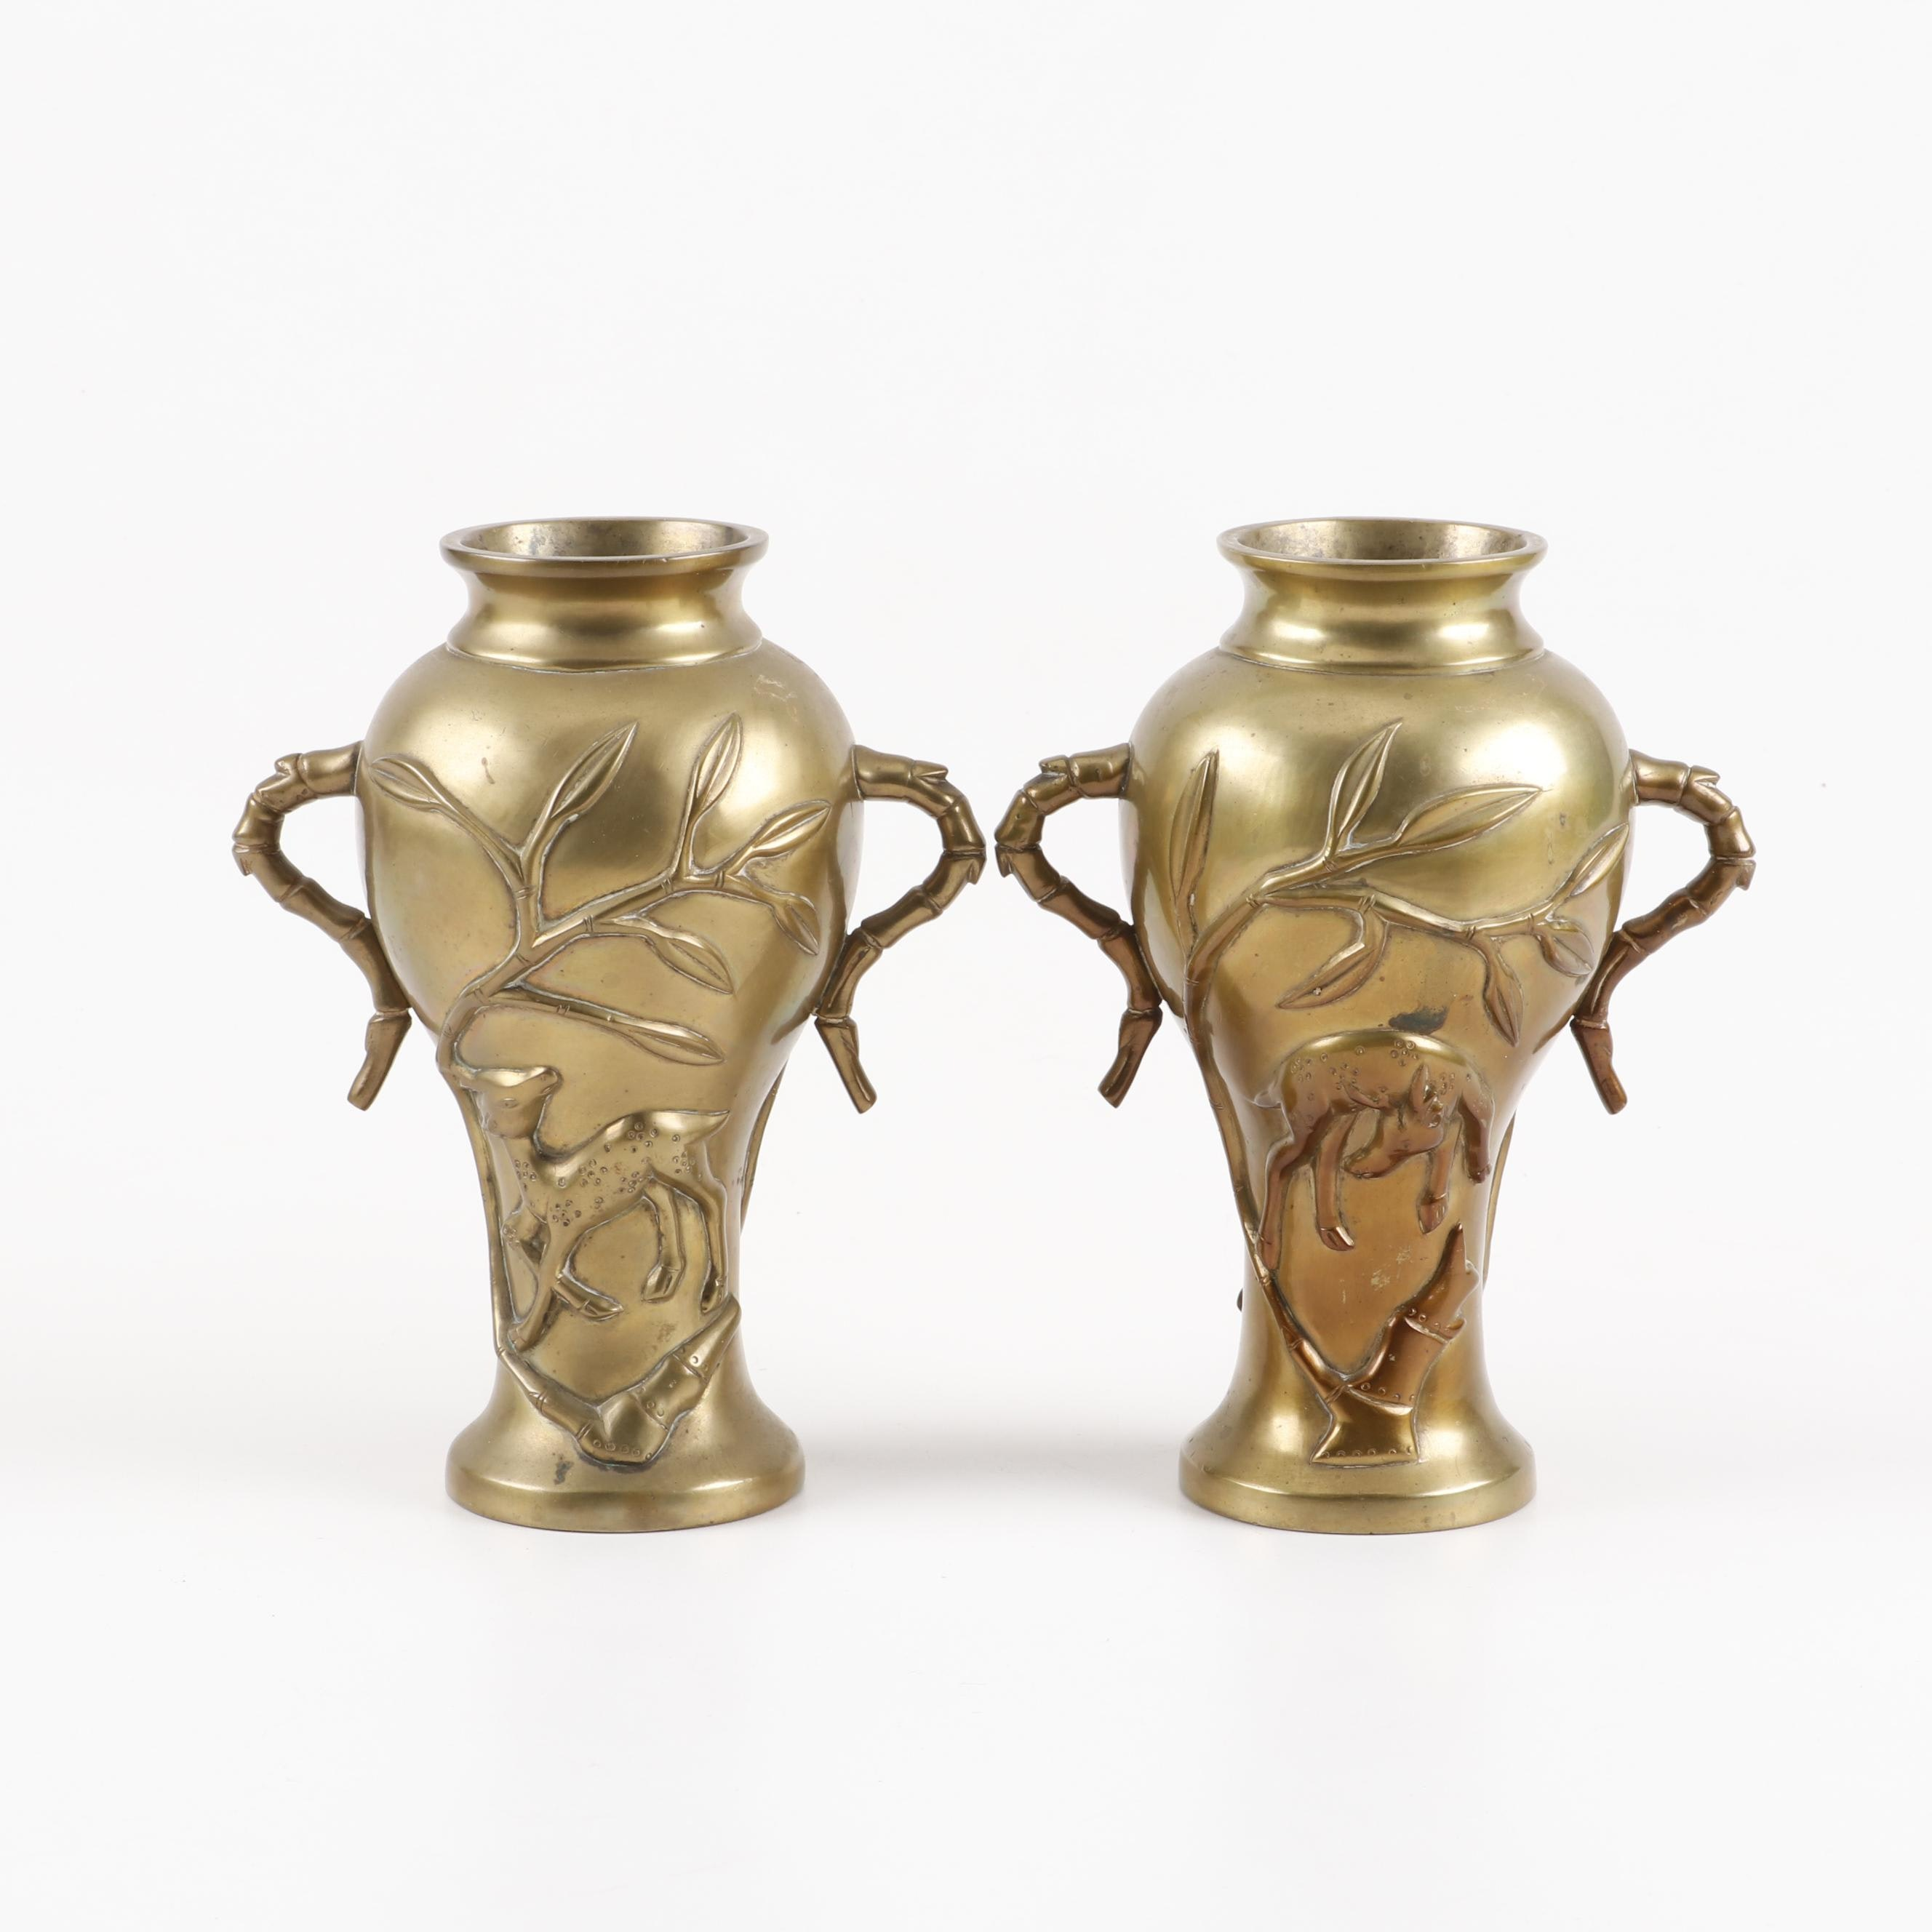 Chinese Dual-Handle Brass Vases Depicting Deer and Bamboo